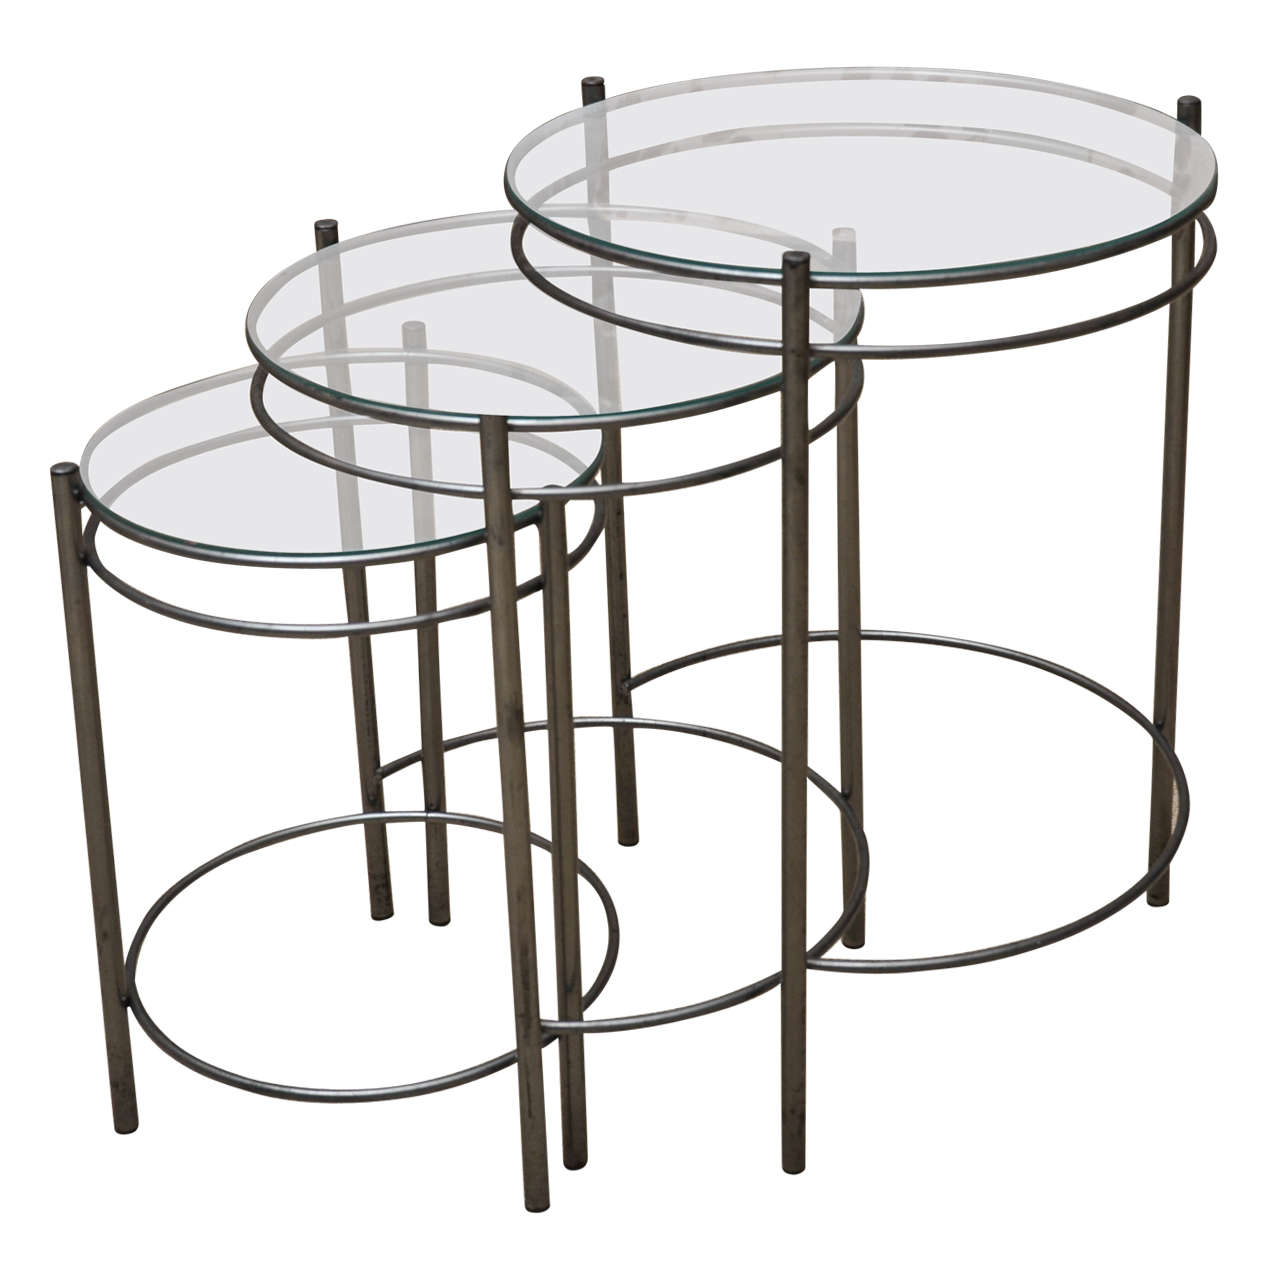 Metal glass nesting tables keko furniture metal glass nesting tables watchthetrailerfo